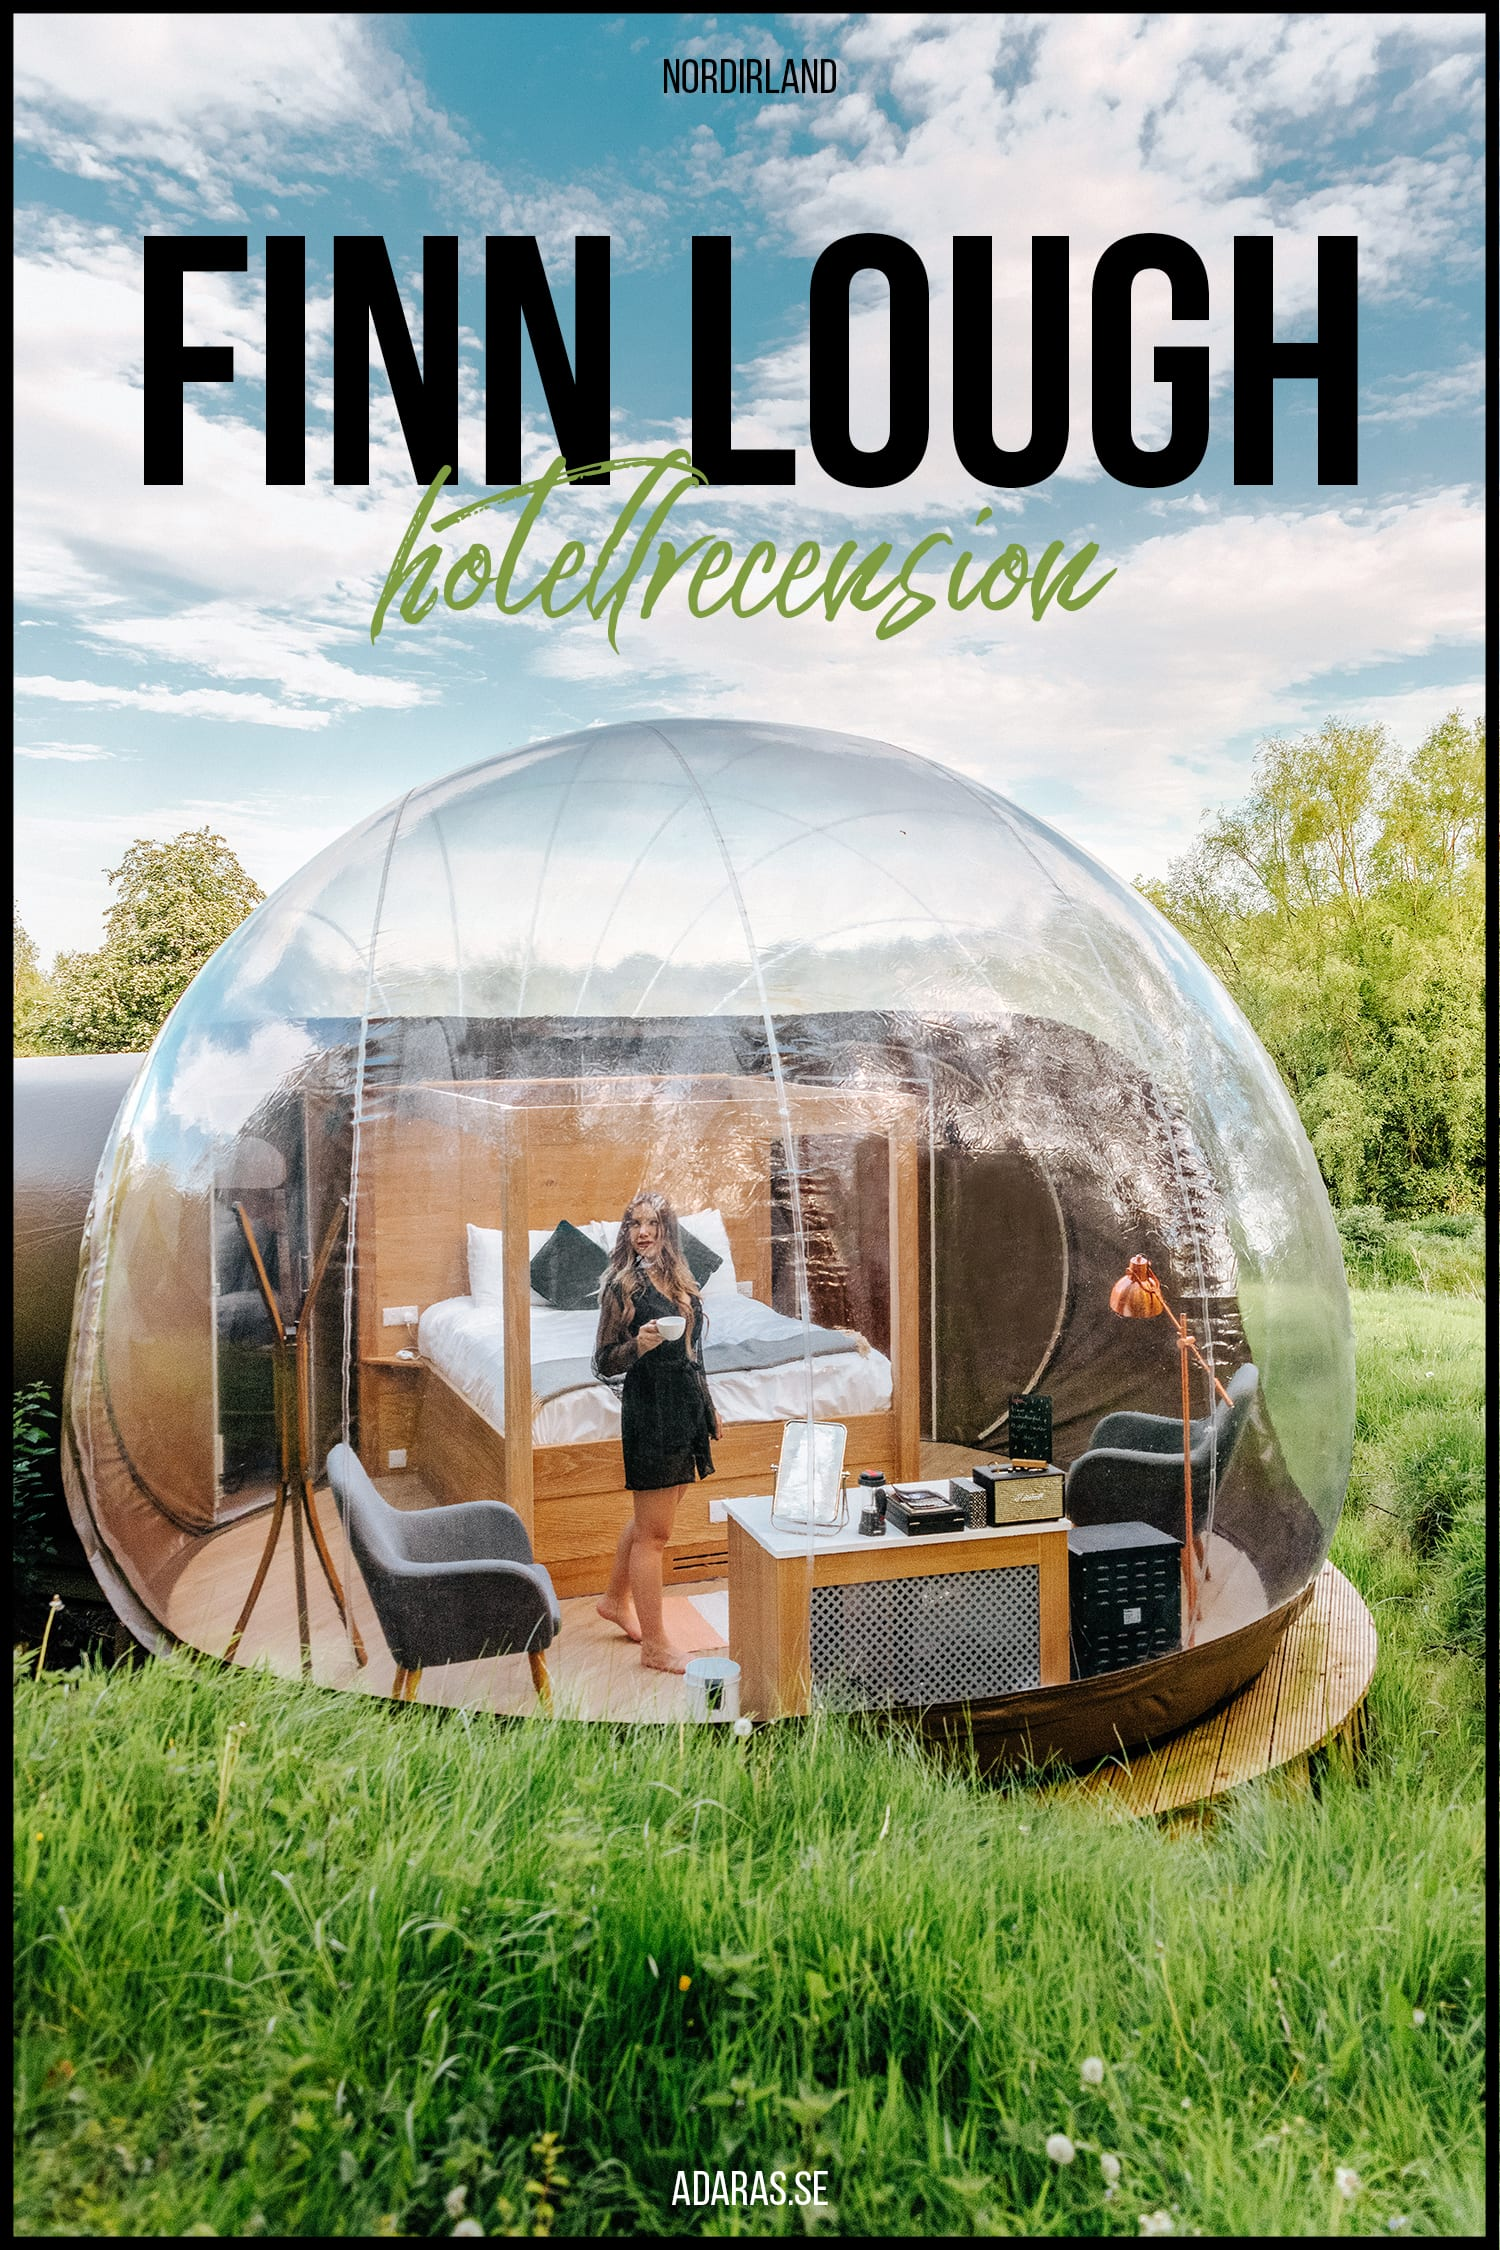 Finn Lough Resort - Bo i en bubbla på Nordirland | Recension av Bubbelhotell